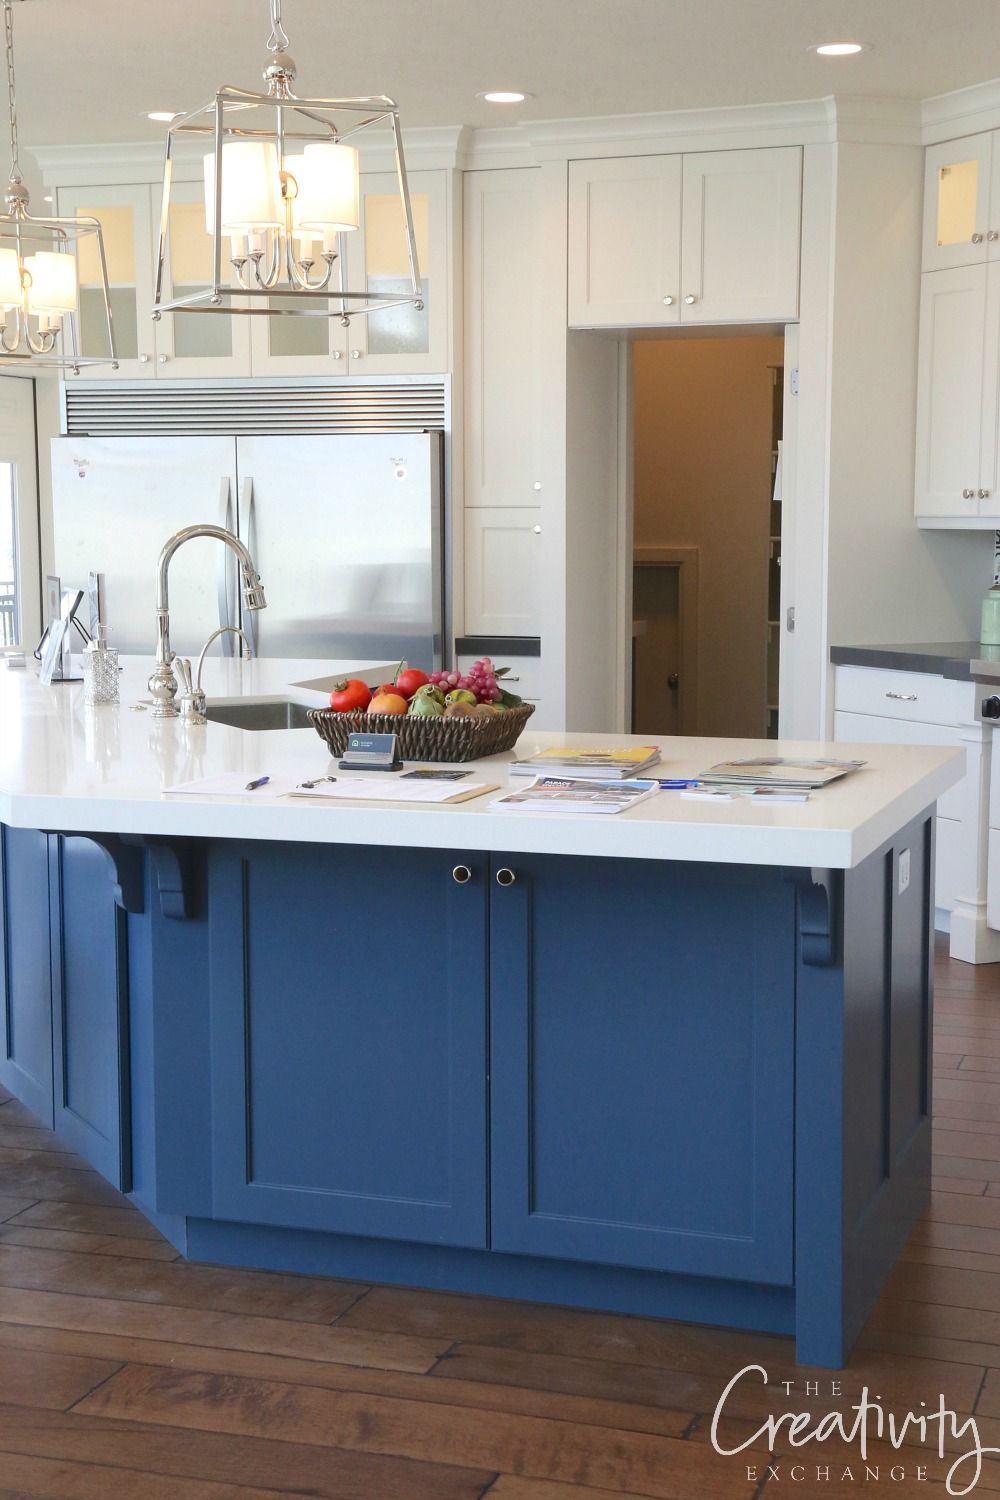 Ppg 2020 Color Of The Year Chinese Porcelain Blue Kitchen